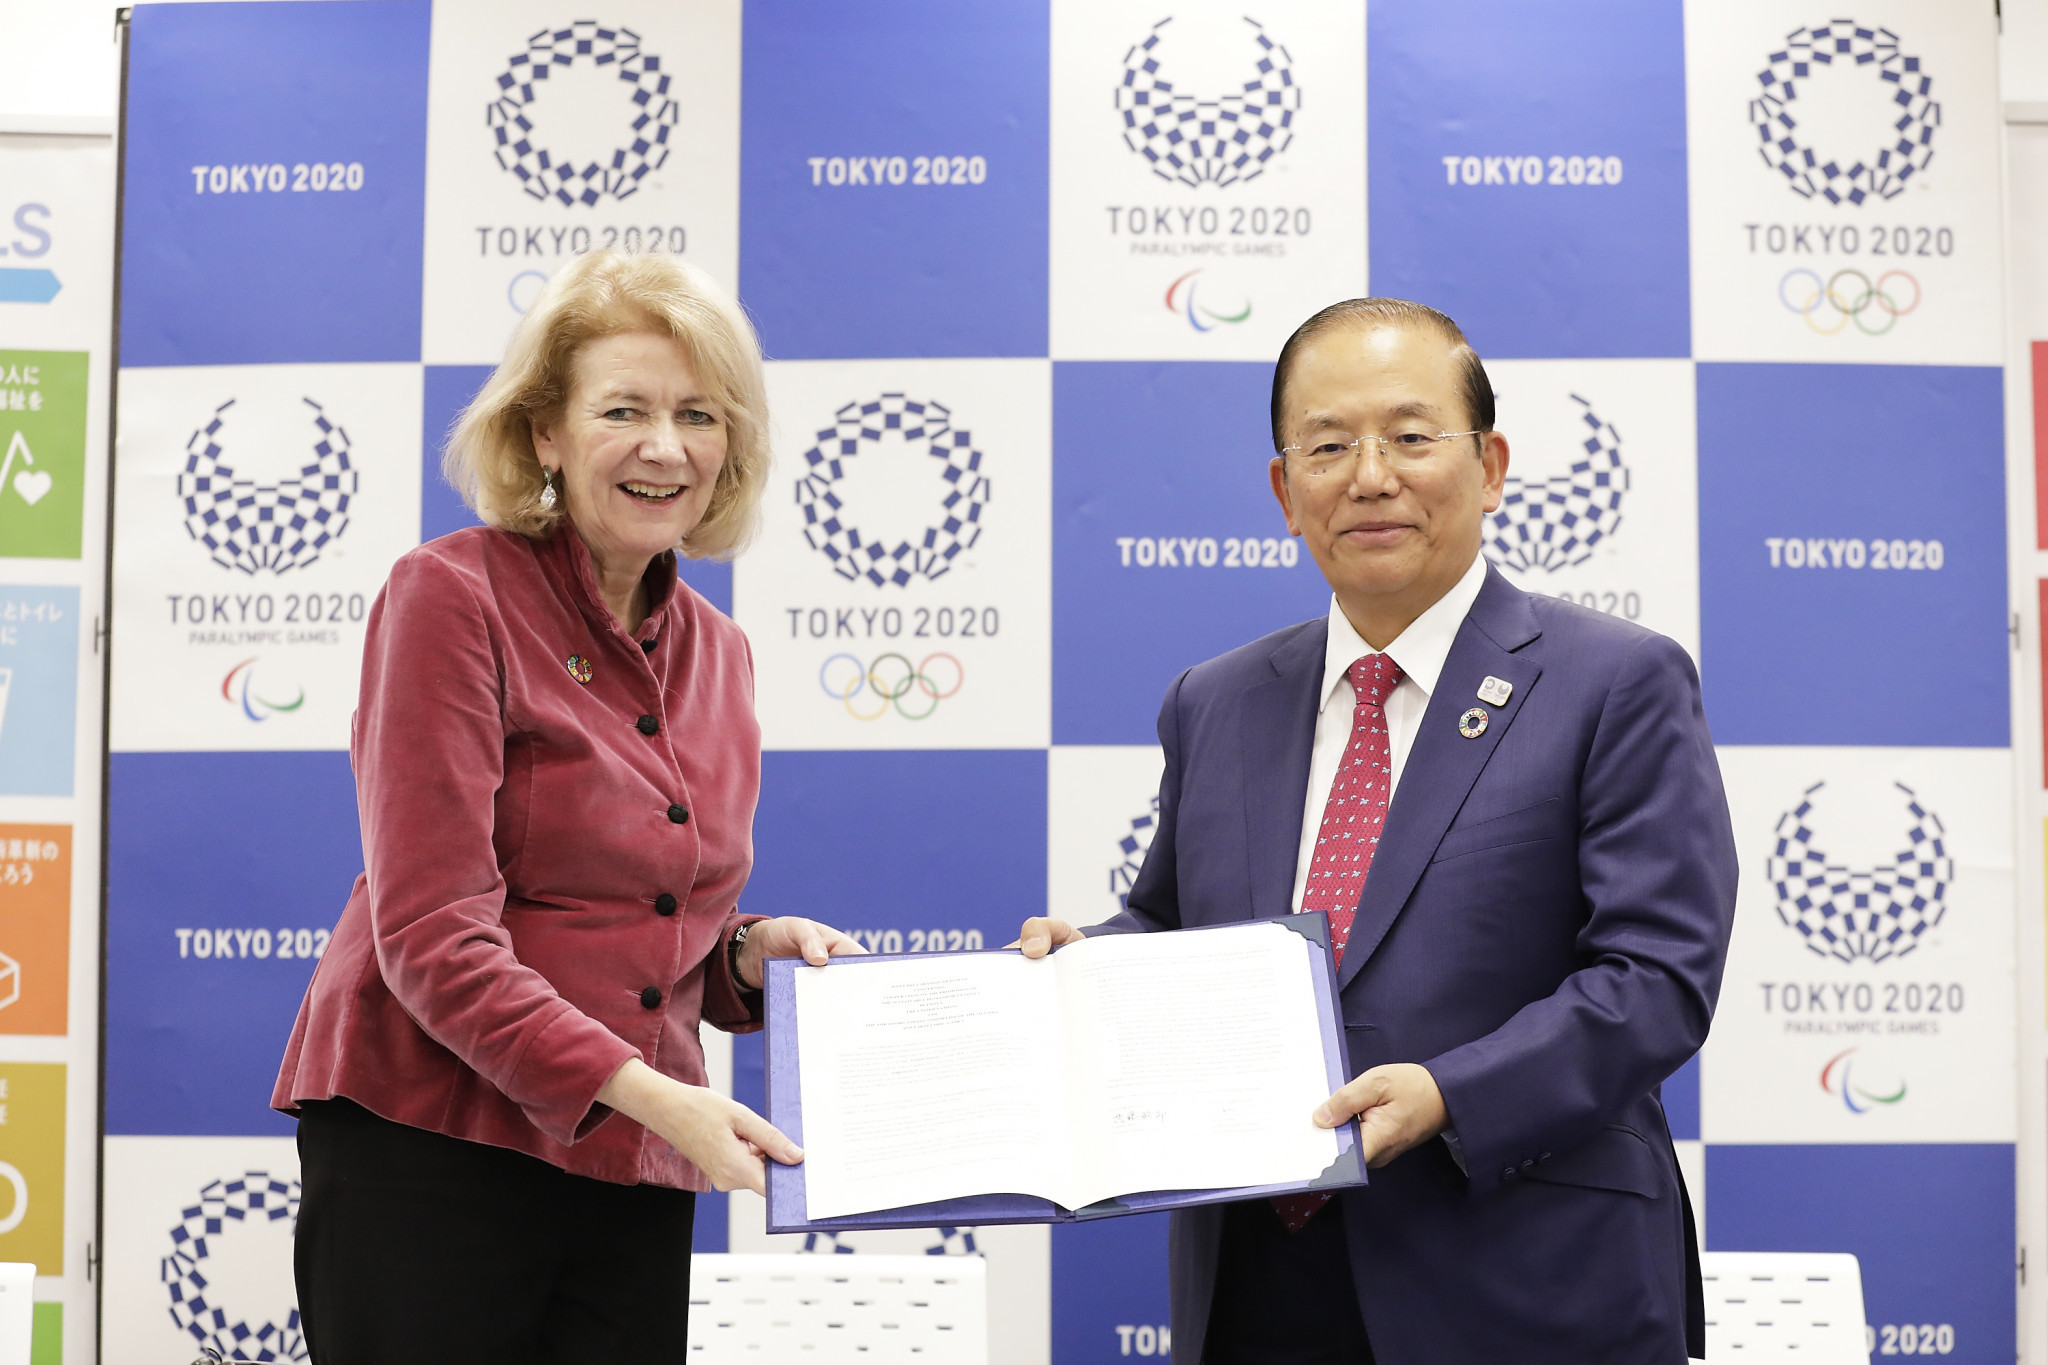 Tokyo 2020 and UN sign letter of intent promoting sustainable development in sport